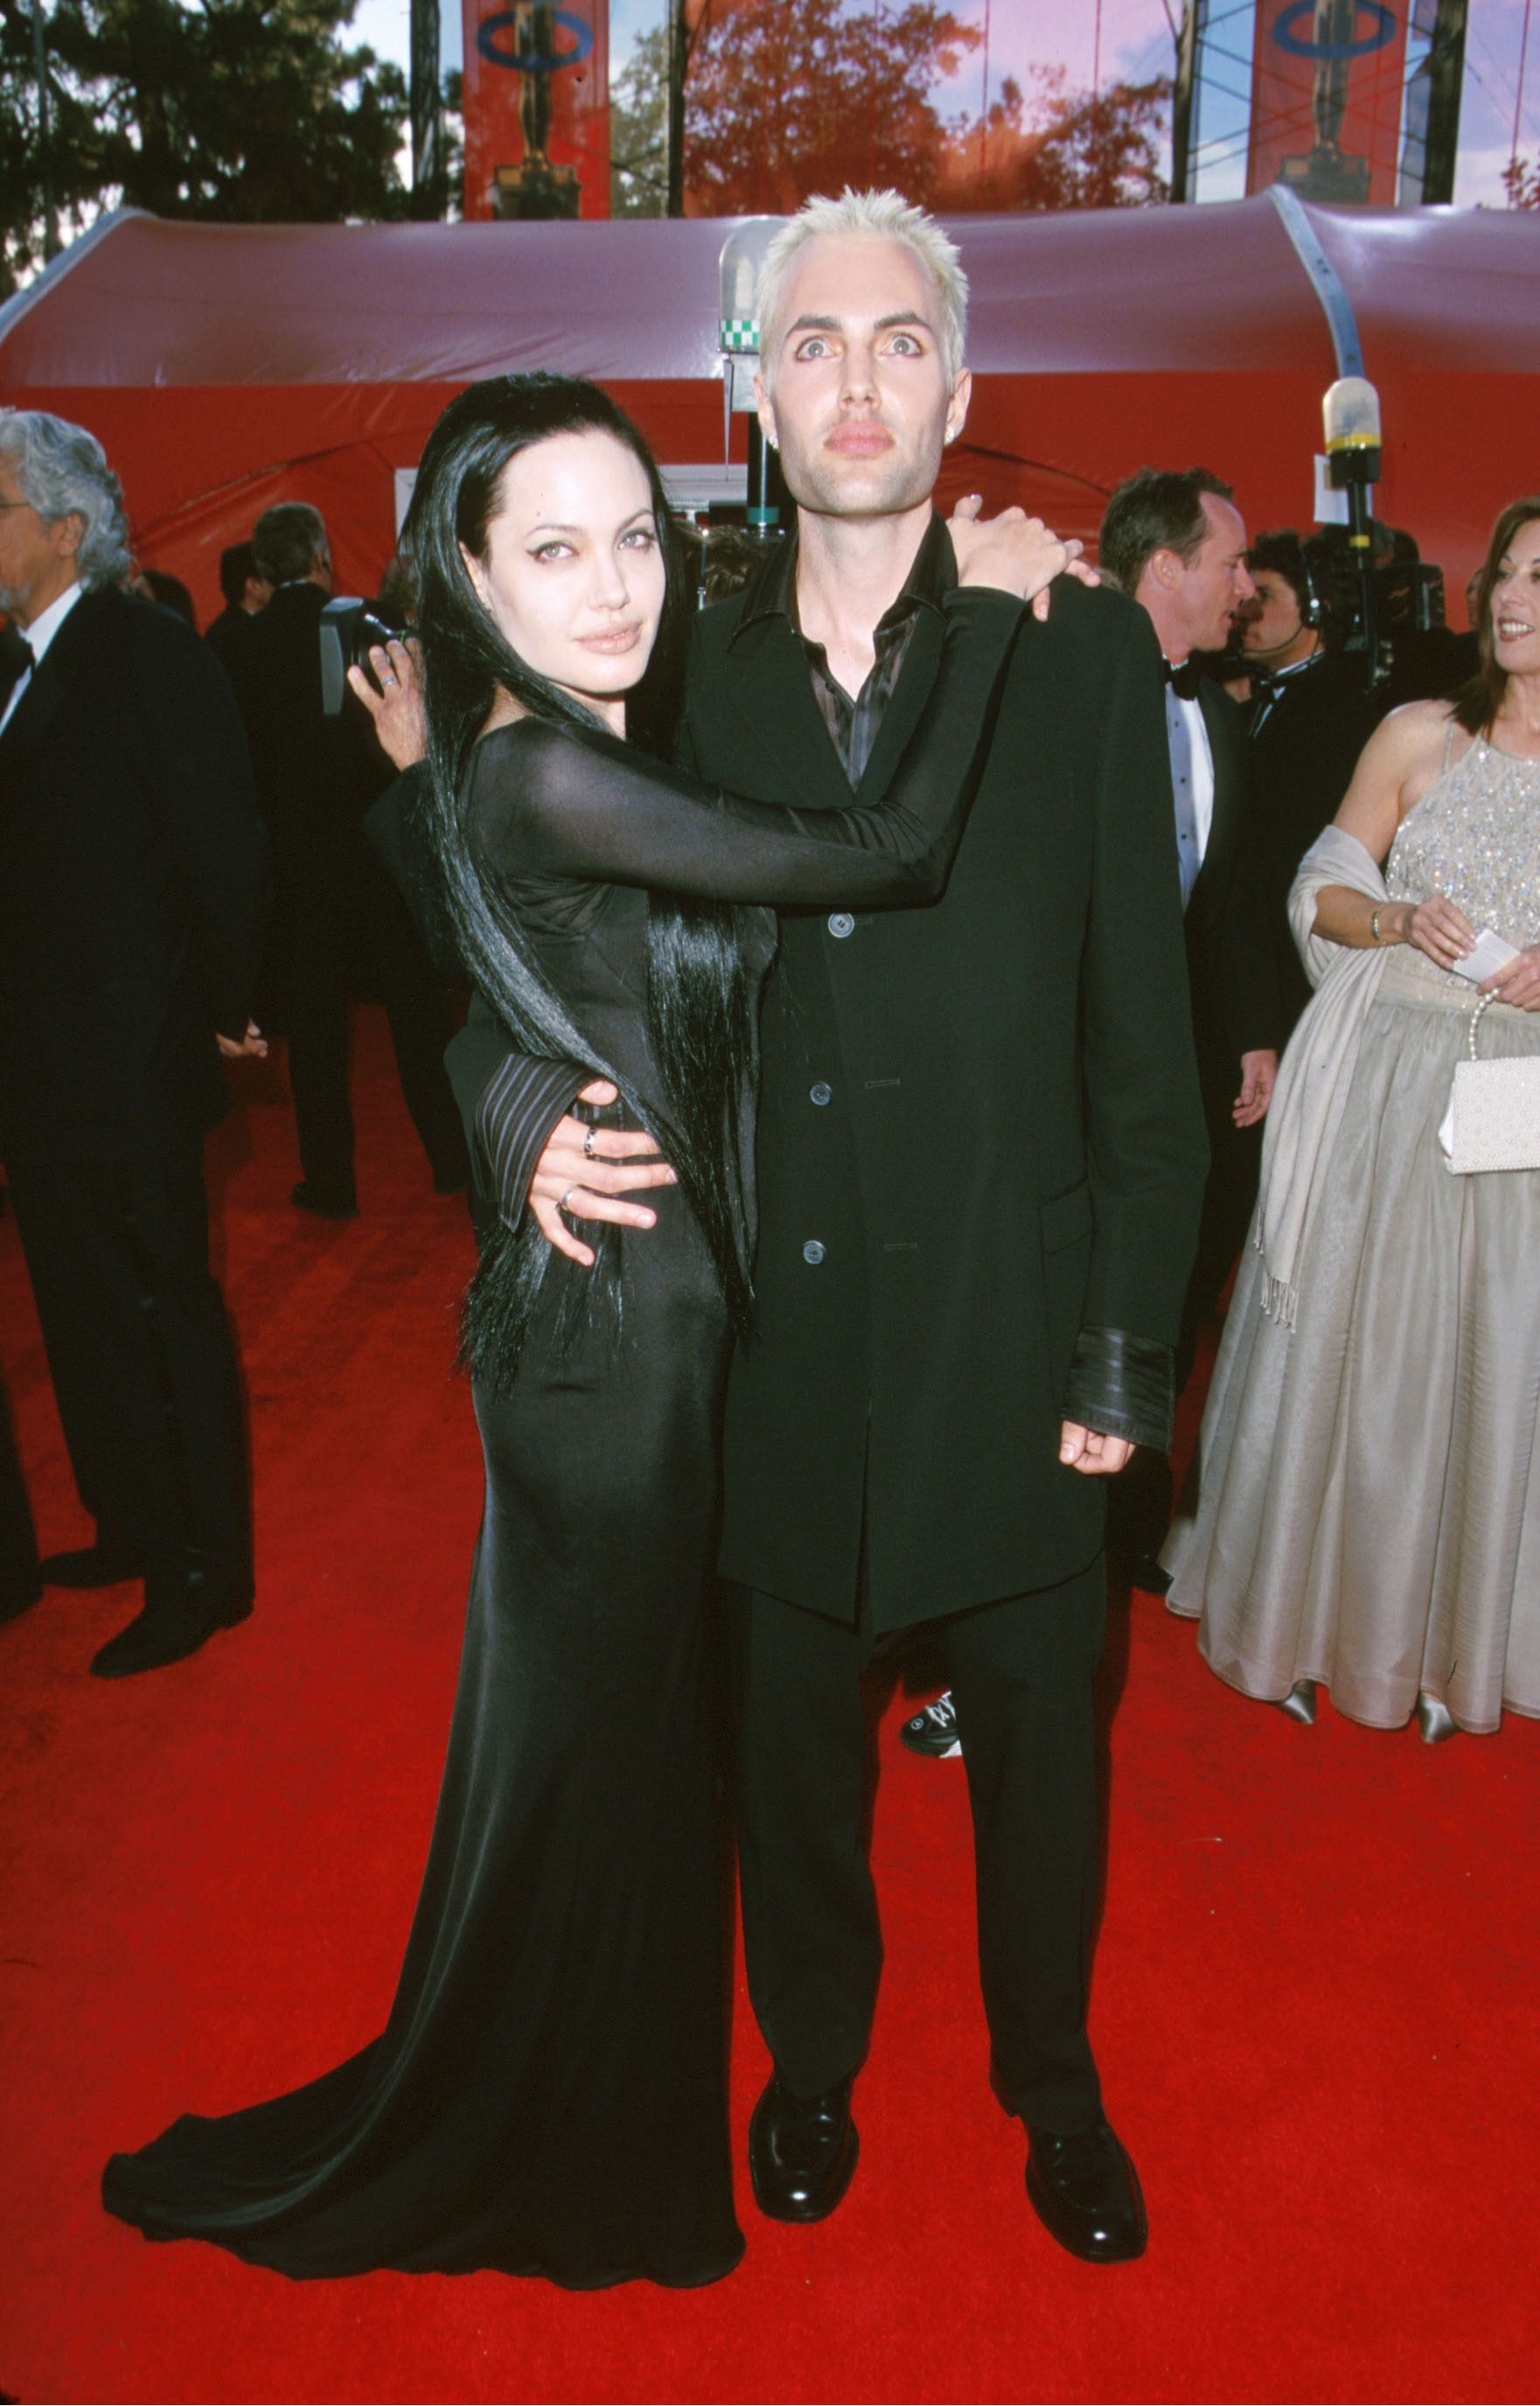 2000: When Angelina Jolie shared a kiss on the lips with her brother. Joile's brother, James, attended the Oscars with her, and they showed they were closer than the average siblings.